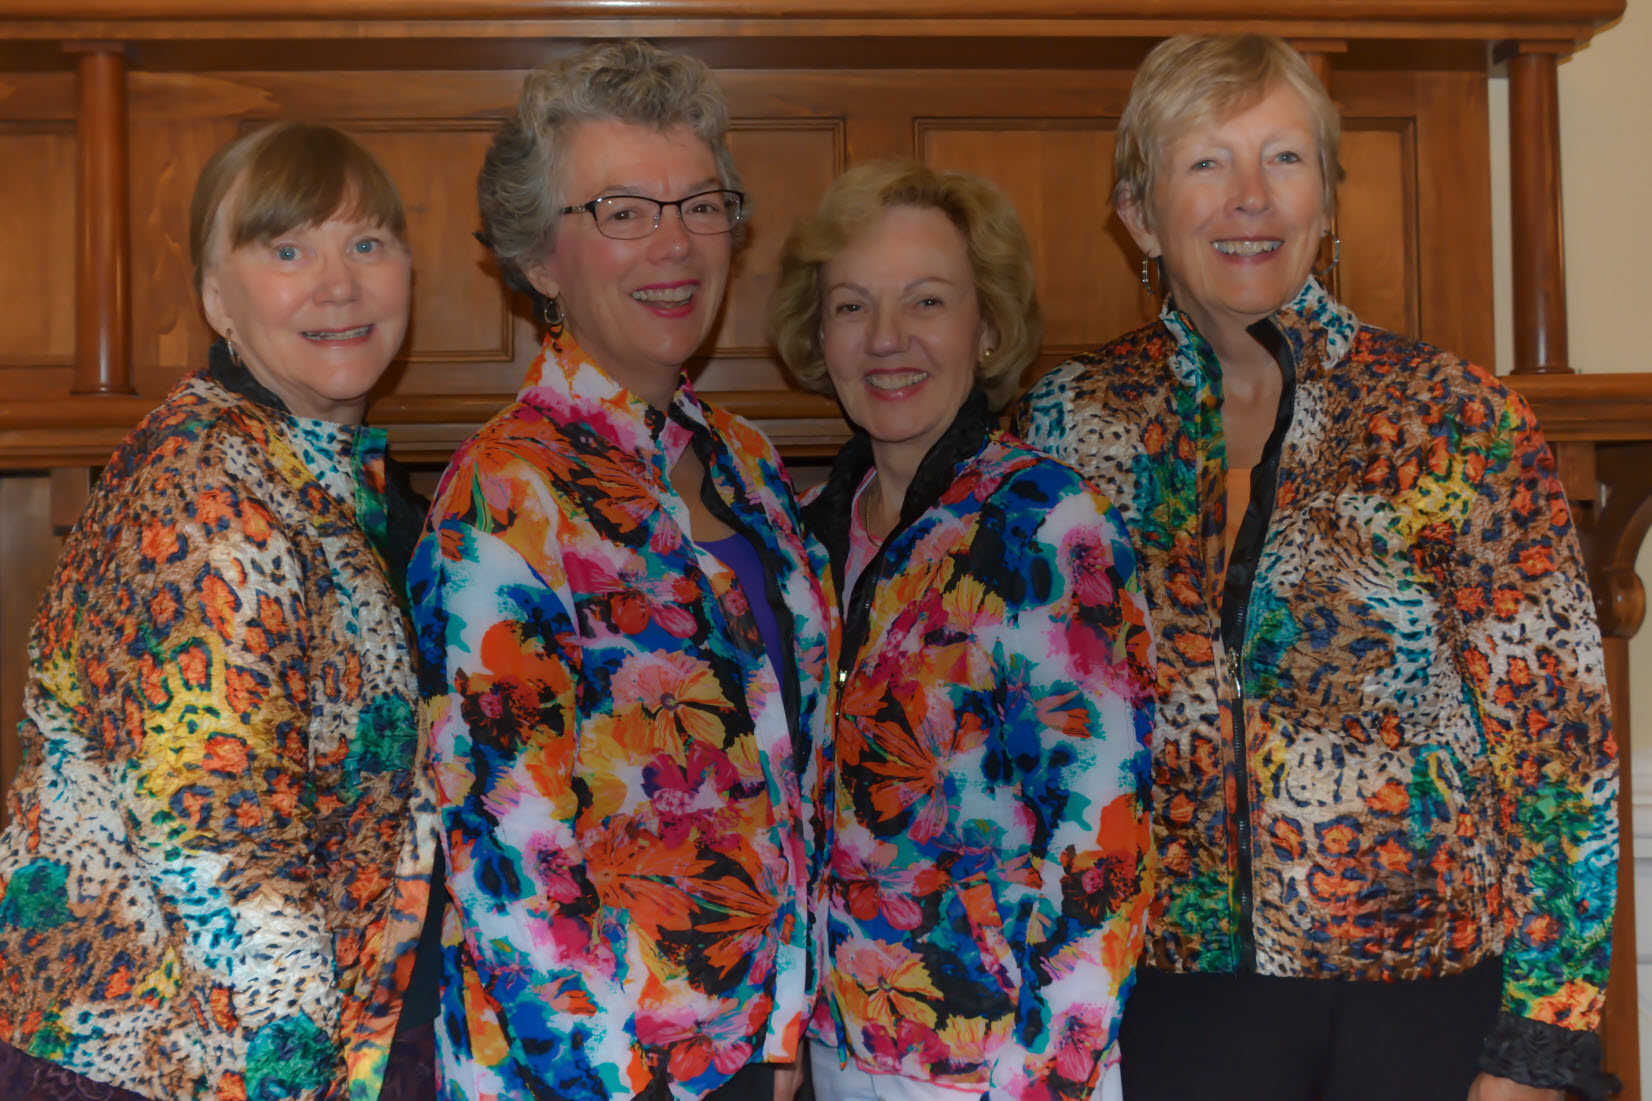 Chautauqua Colorful Women1